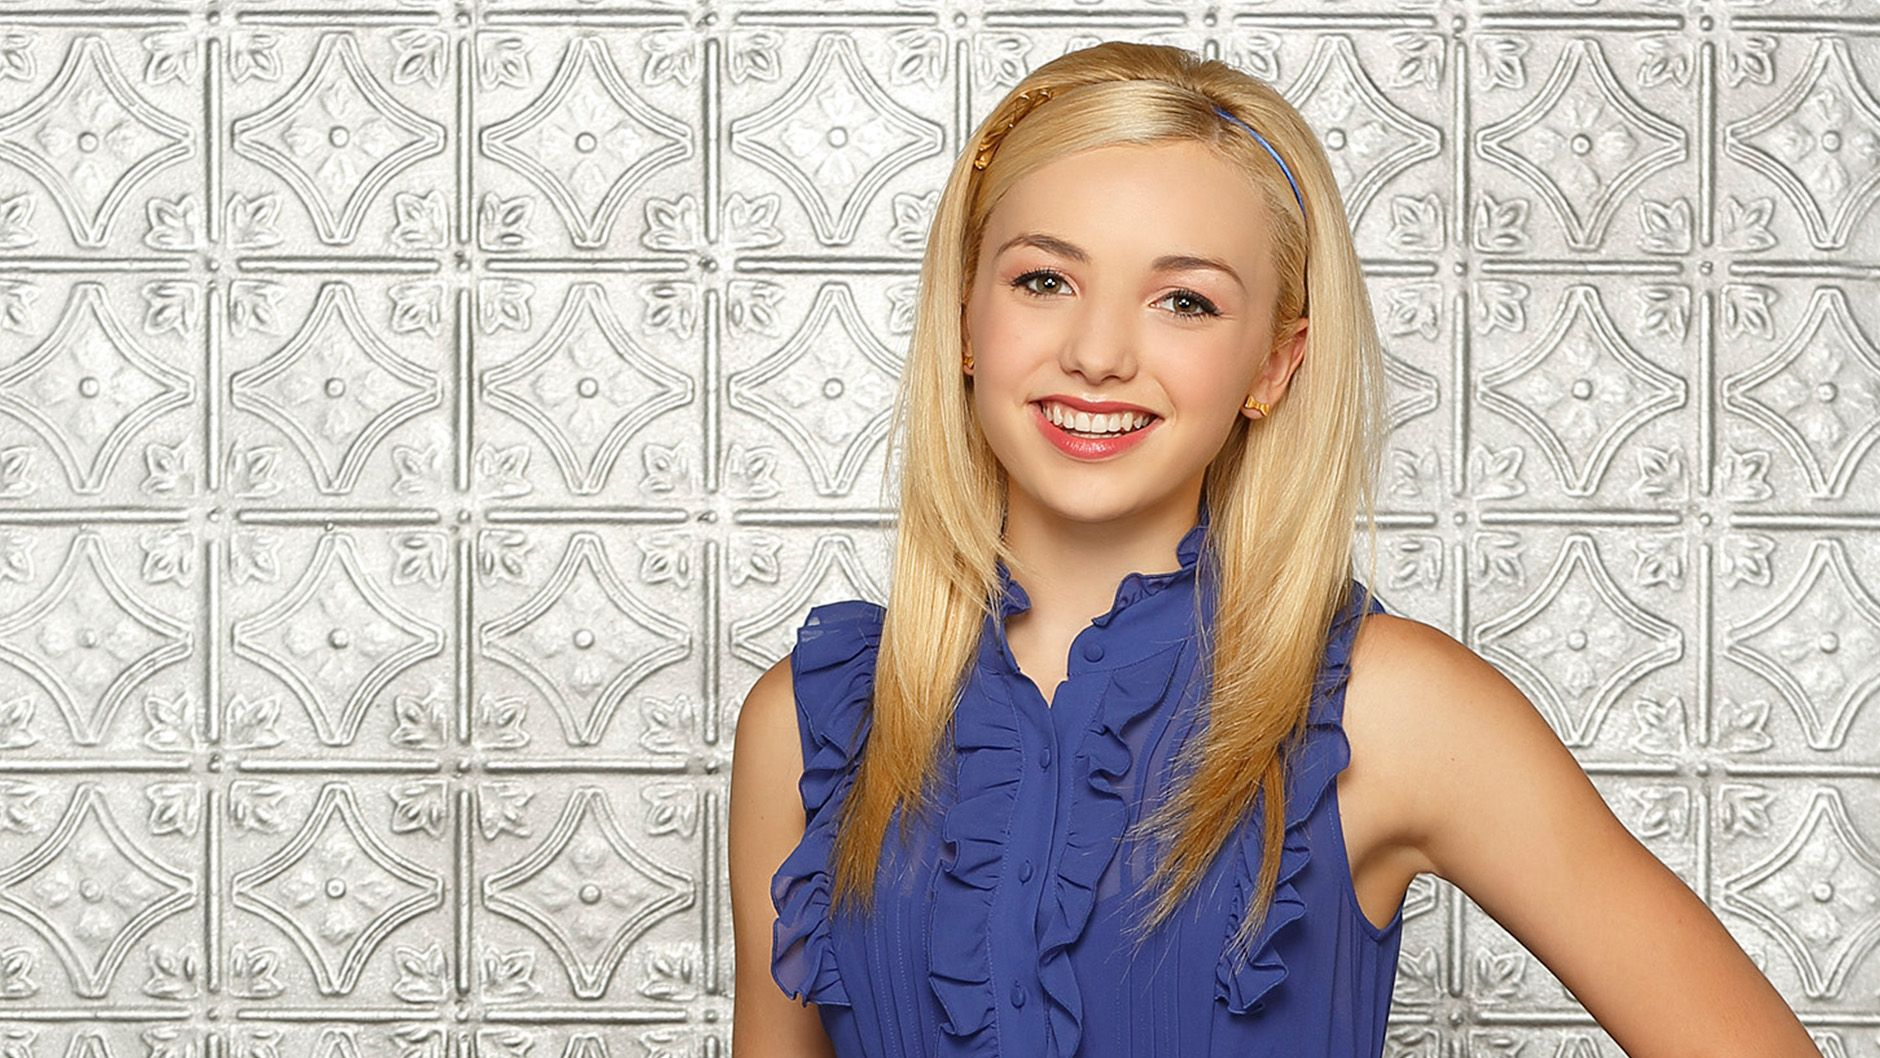 Peyton ROI LIST Is Emma Brooke ROSS The Only Biologic Girl Of